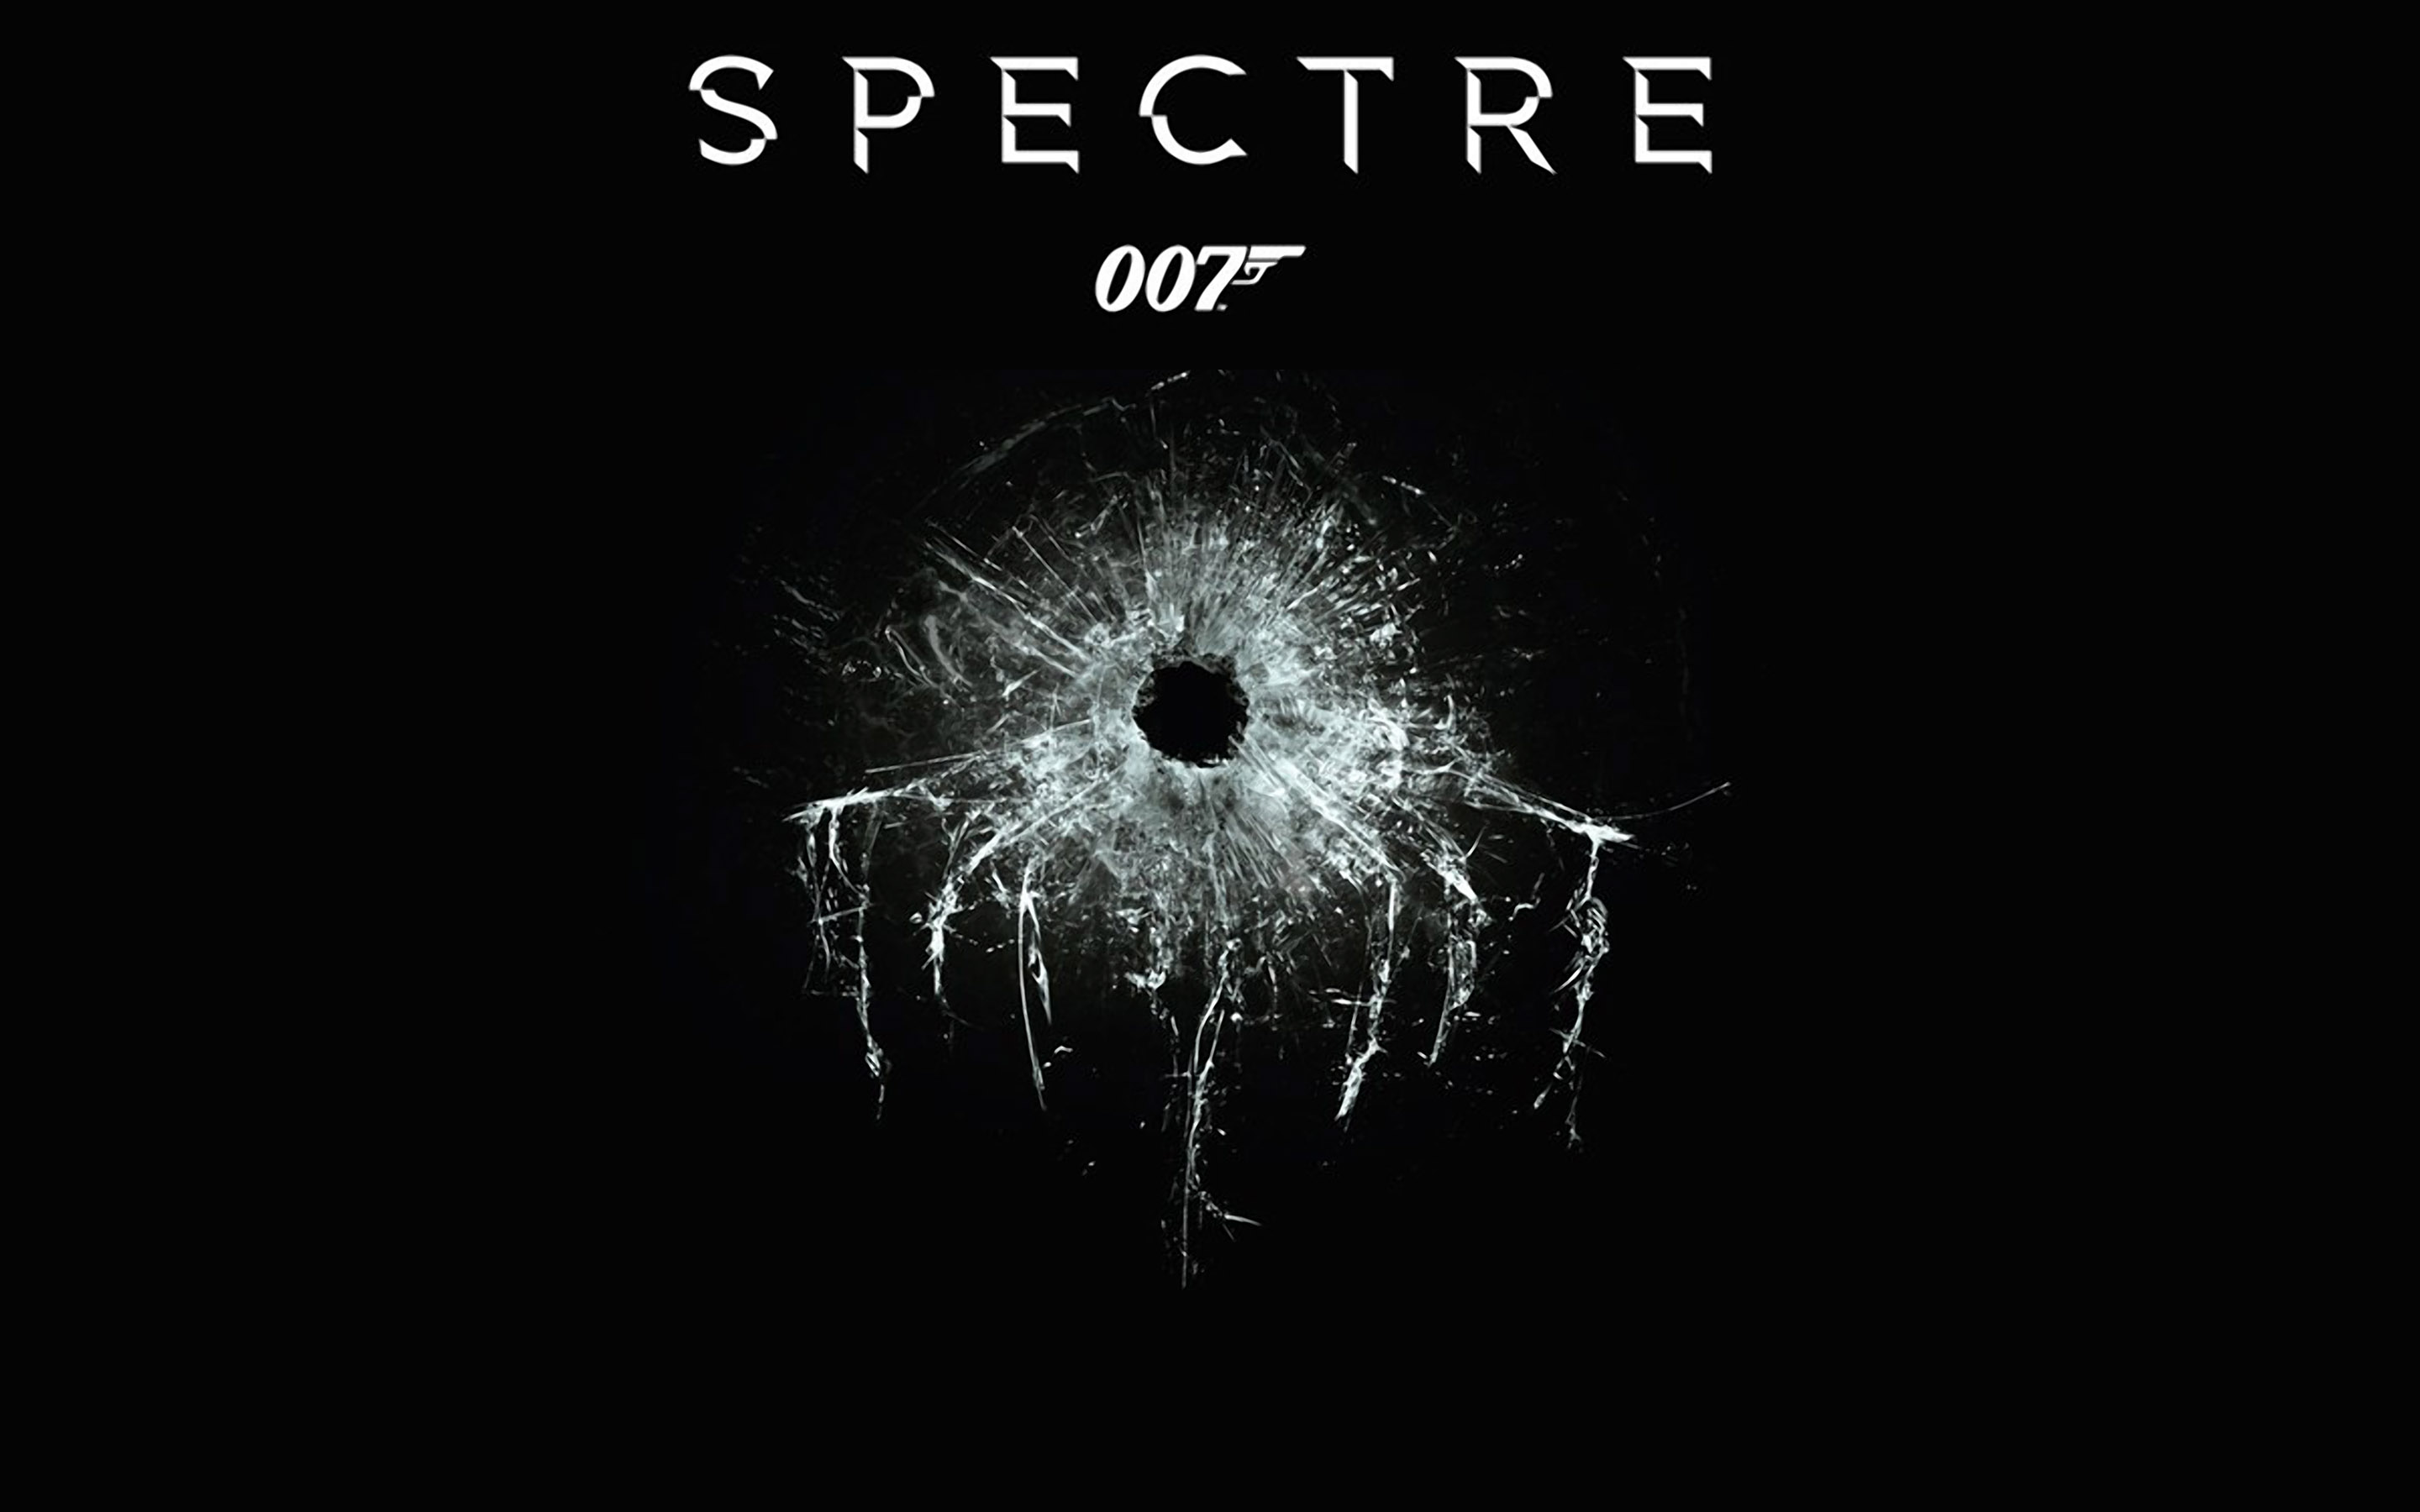 007 Spectre wallpaper 2